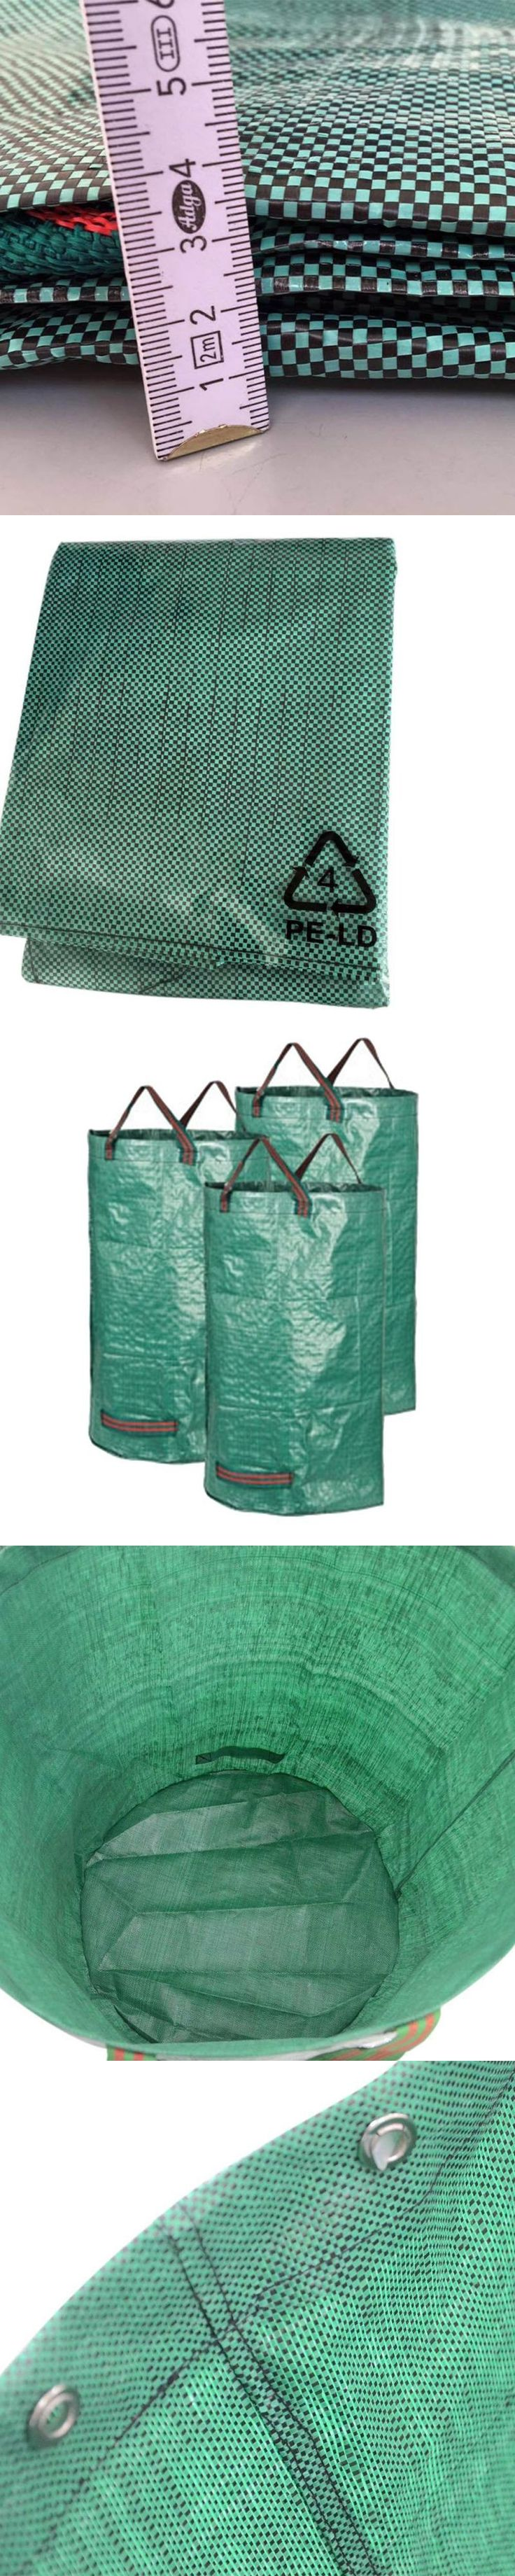 New Arrival 1 pcs 115L/25.5GA Gardening Bag Weeds Grass Container Reusable Yard Leaf Tool Storage Laundry Trash Bag Garden Clea